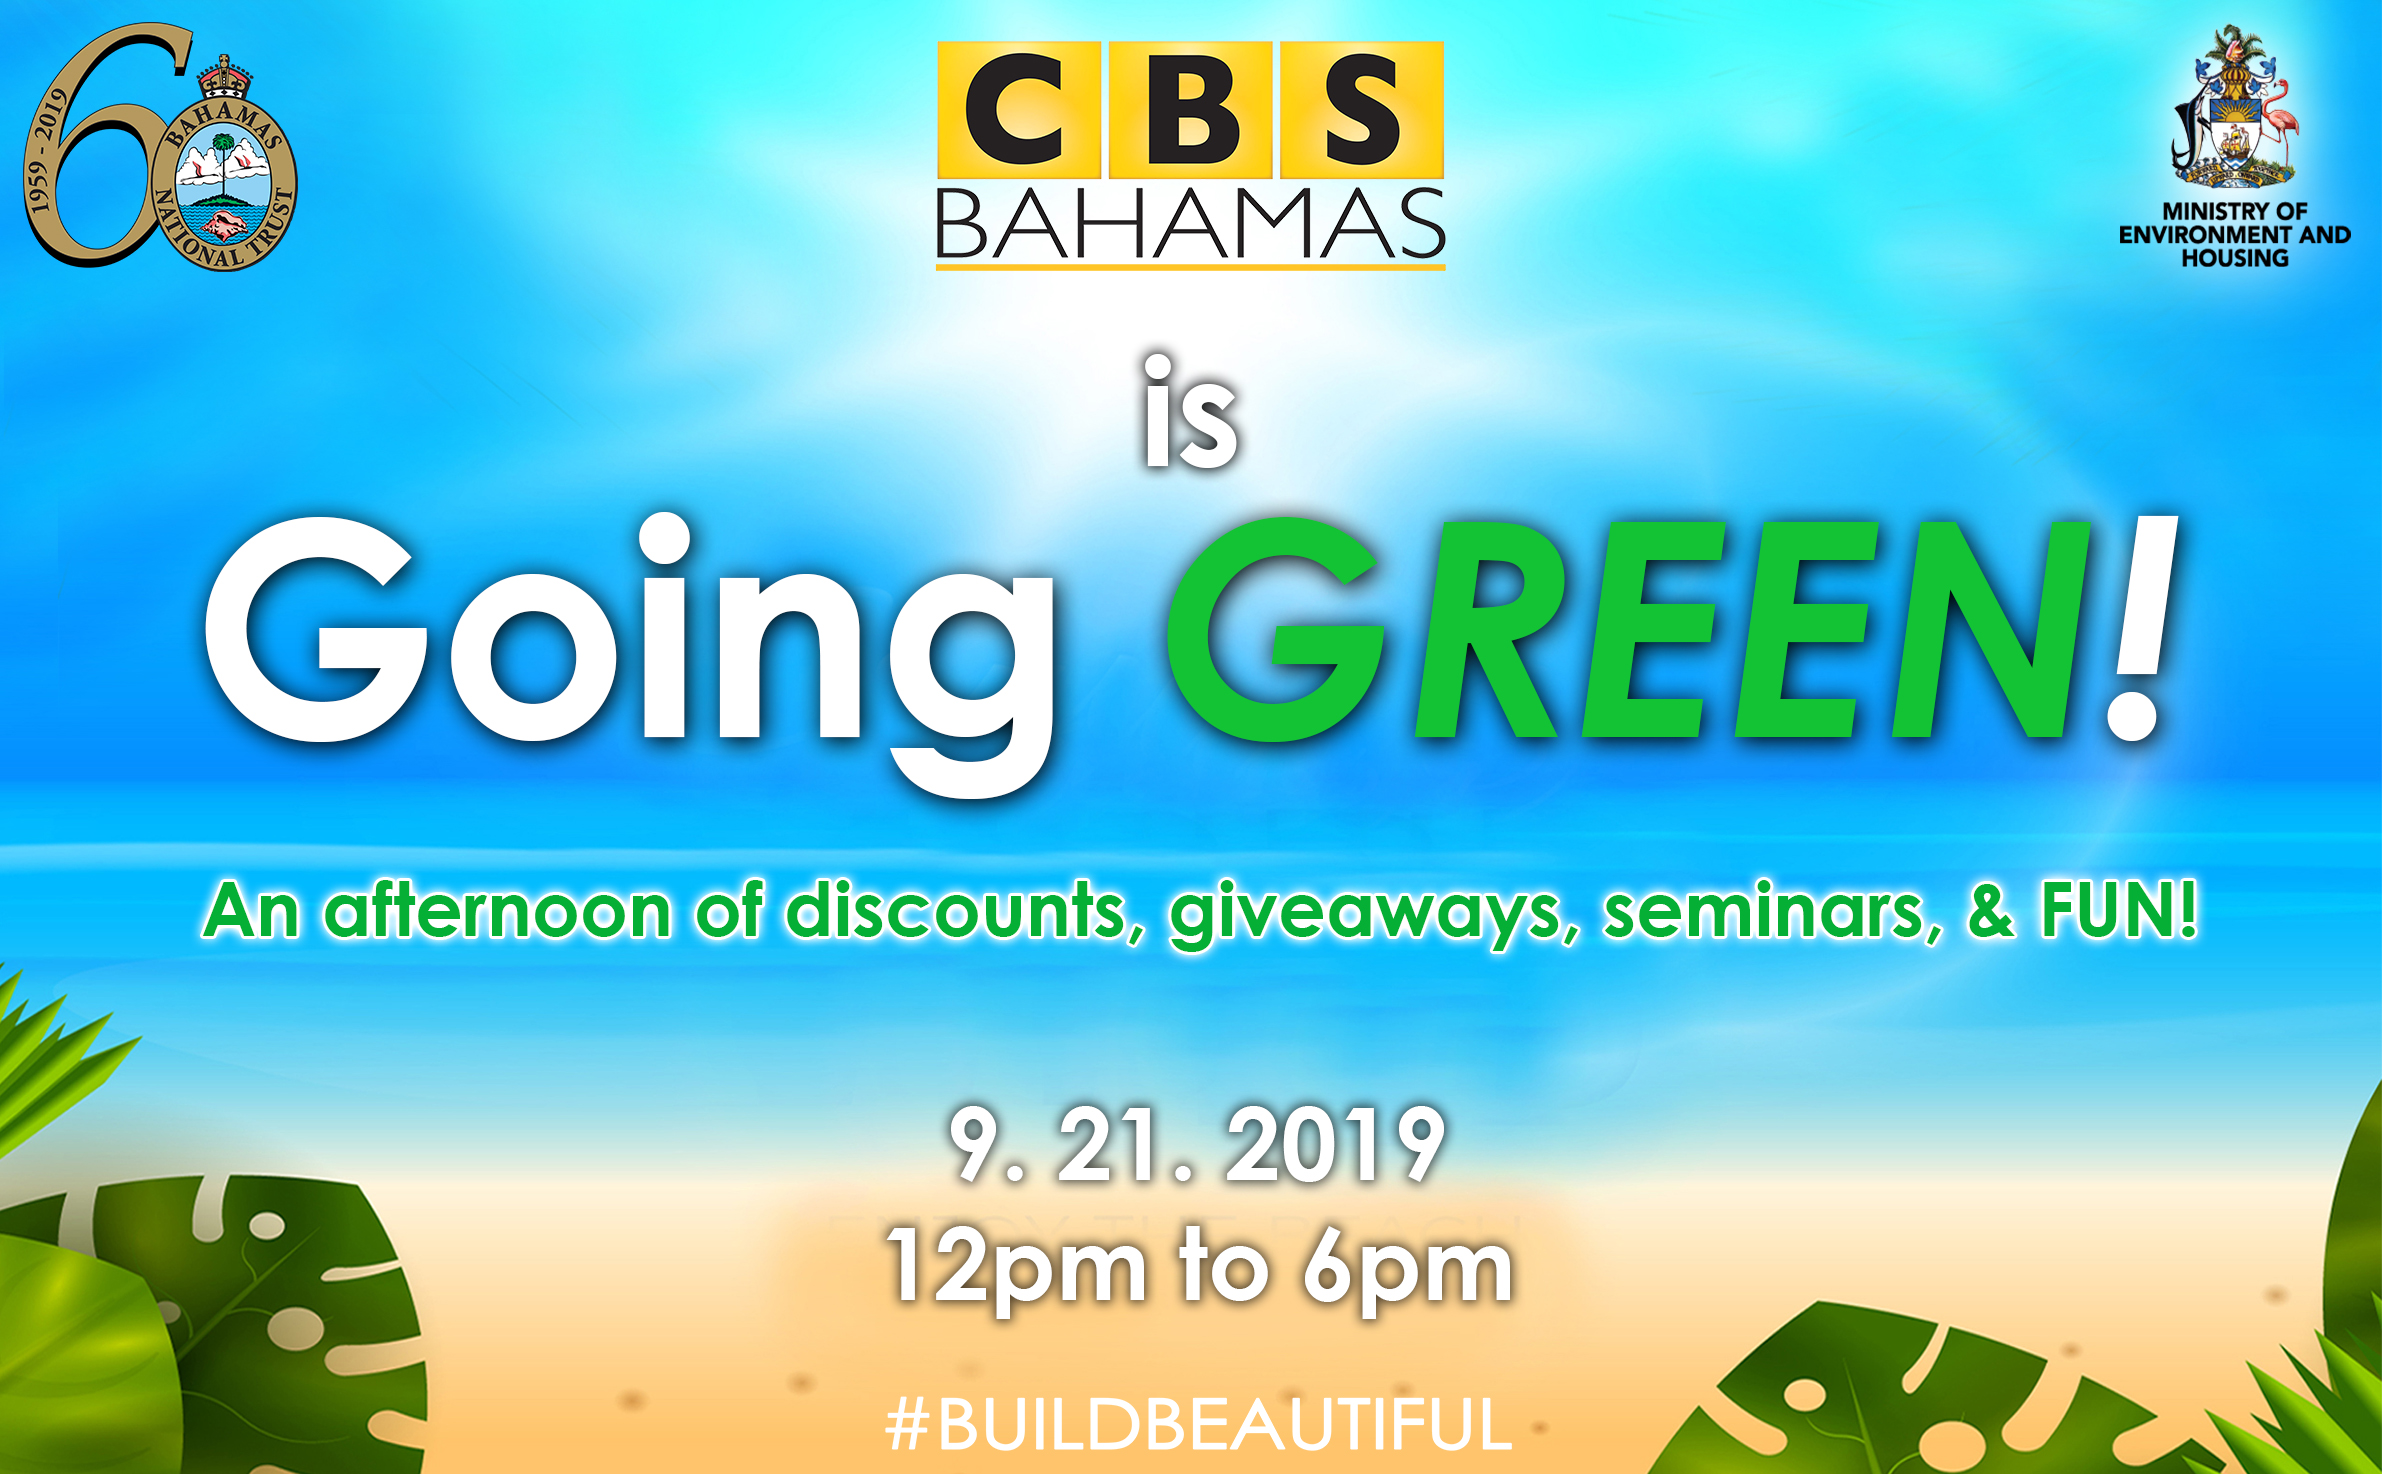 CBS Bahamas is Going Green